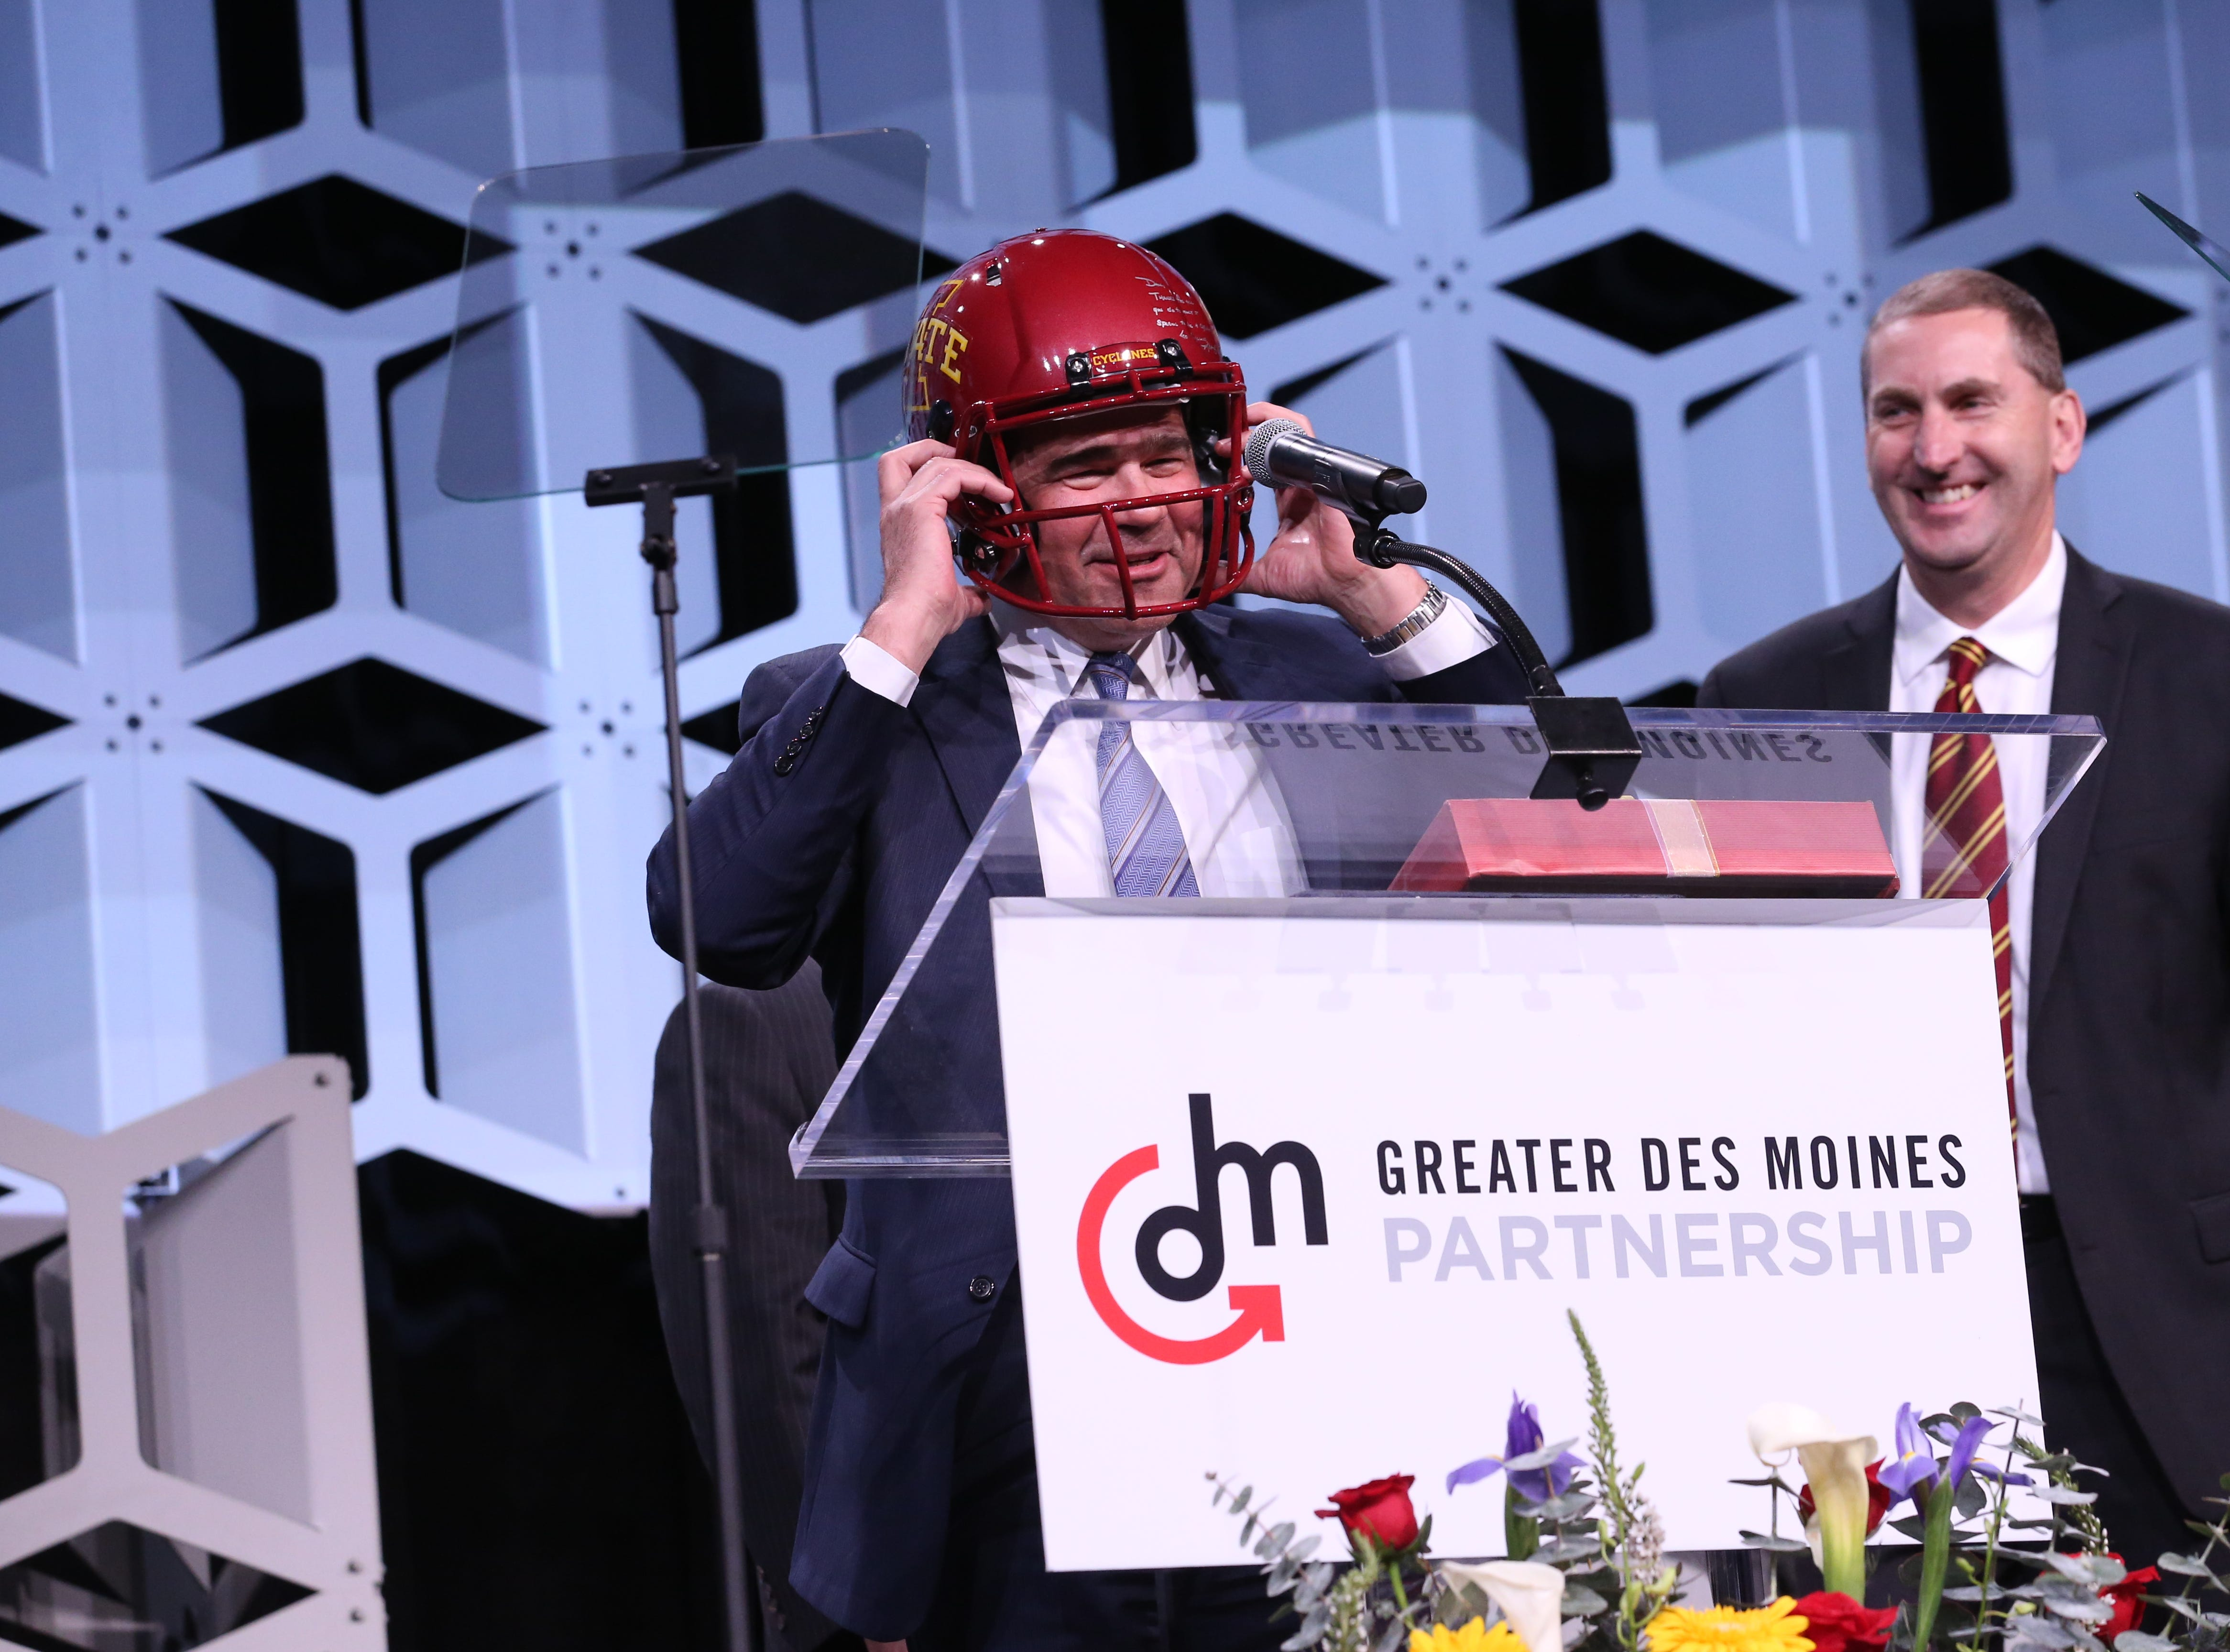 Iowa State University Director of Athletics Jamie Pollard presented 2018 Partnership Board Chair Dan Houston with a gift of an Iowa State football helmet at Partnership's Annual Dinner on January 17, 2019 at the Iowa Events Center.